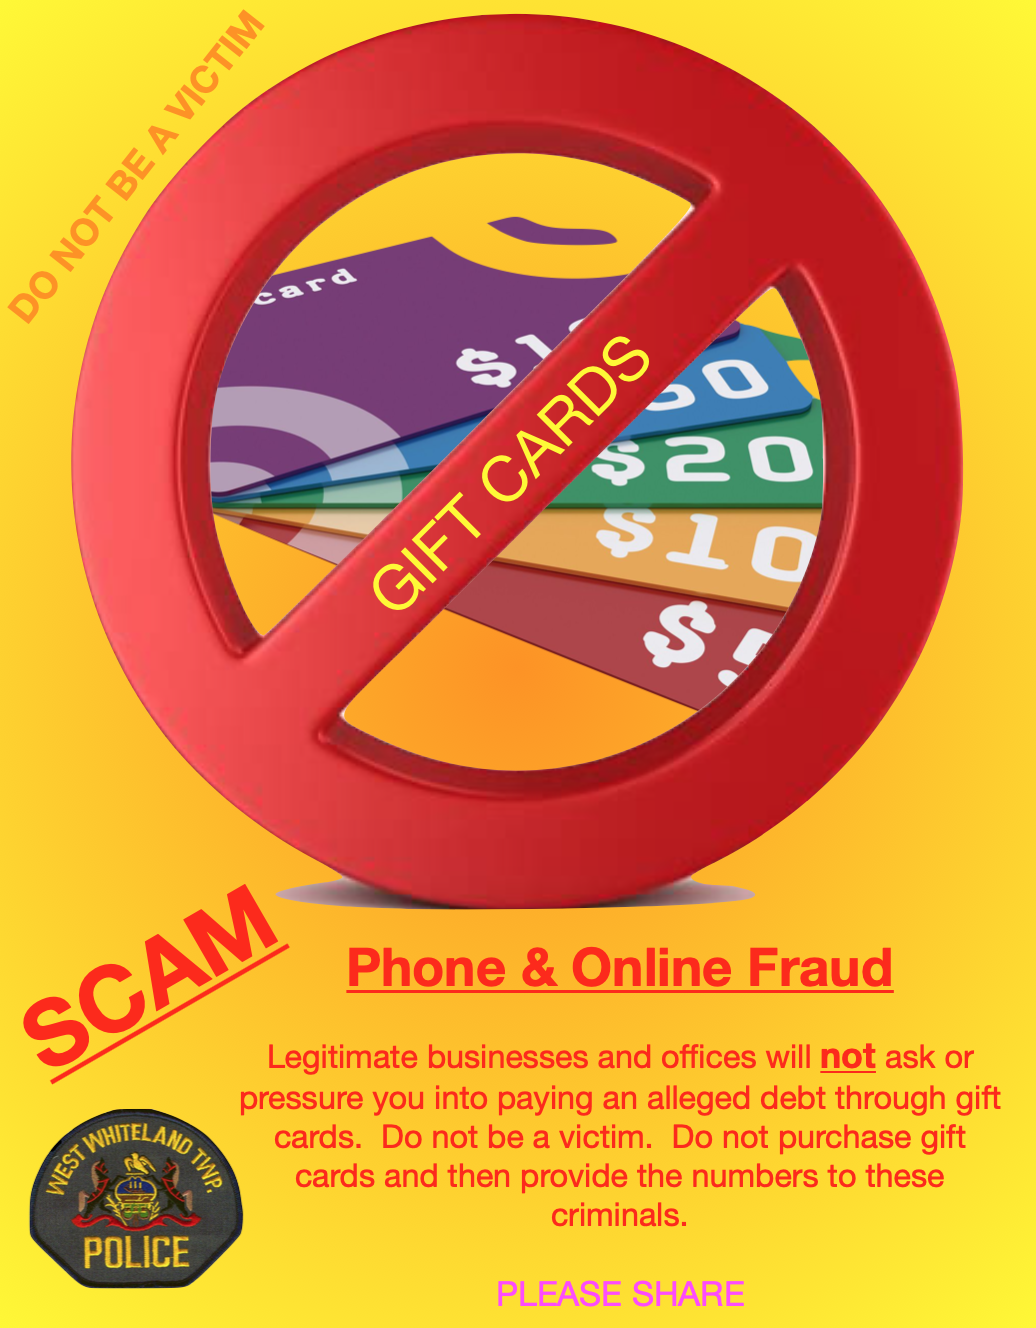 Gift card fraud continues - be smart and do not be a victim